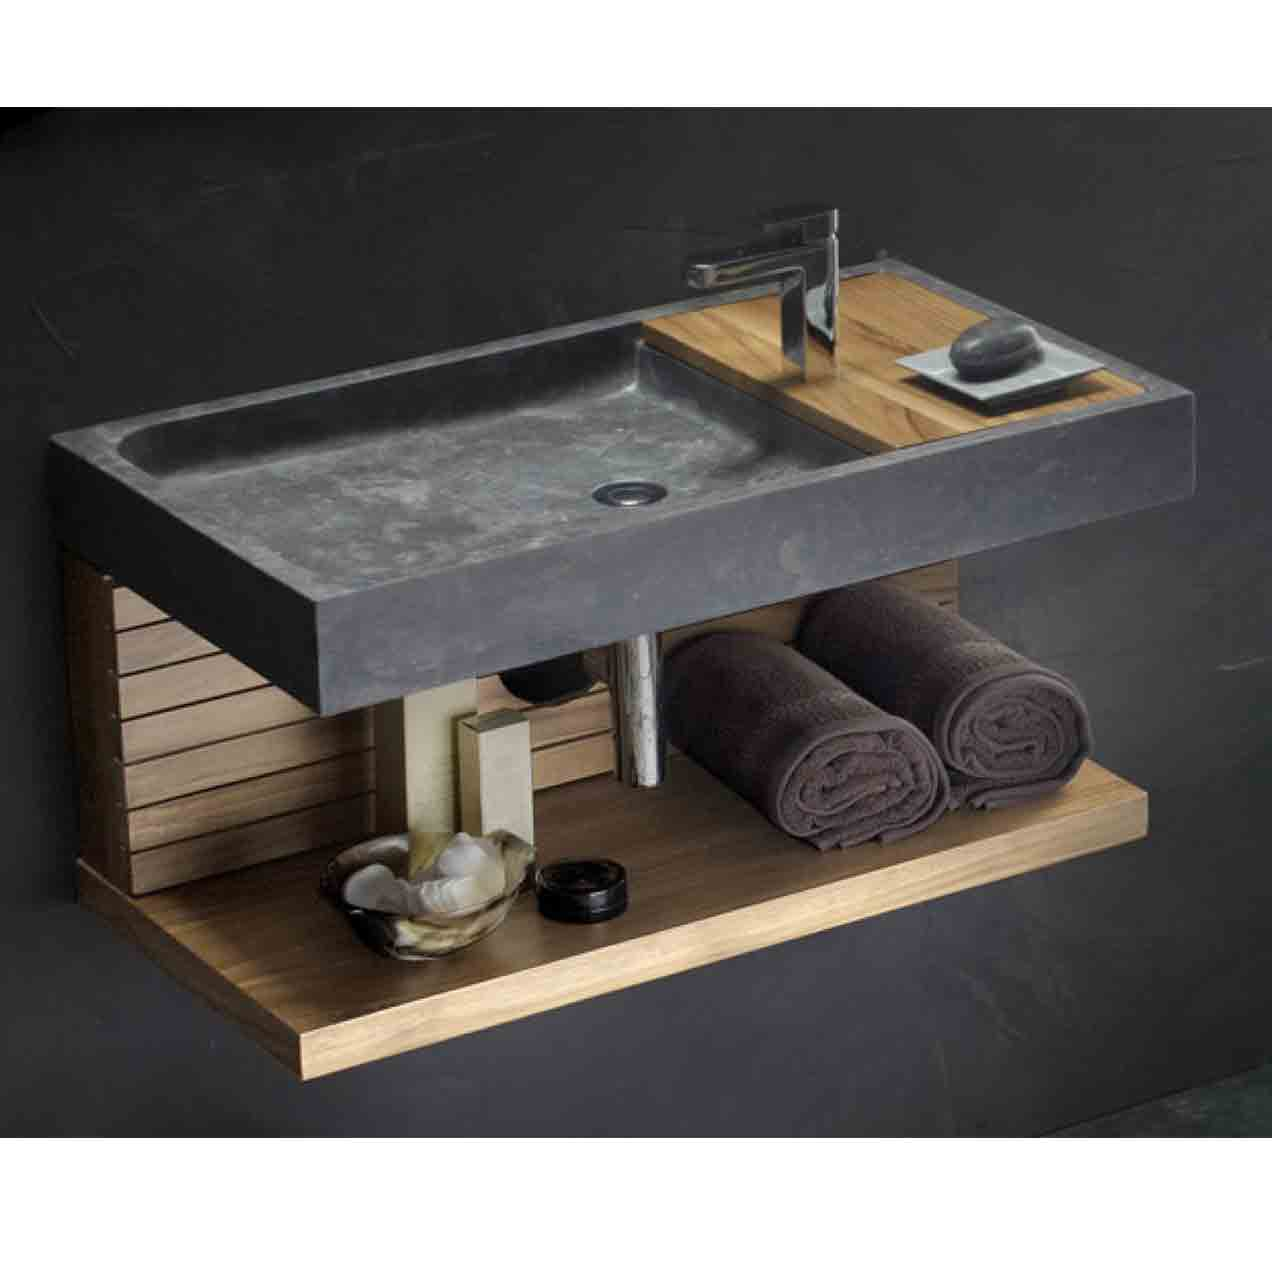 Dimension Meuble Evier : Evier salle de bain dimension meuble sous of